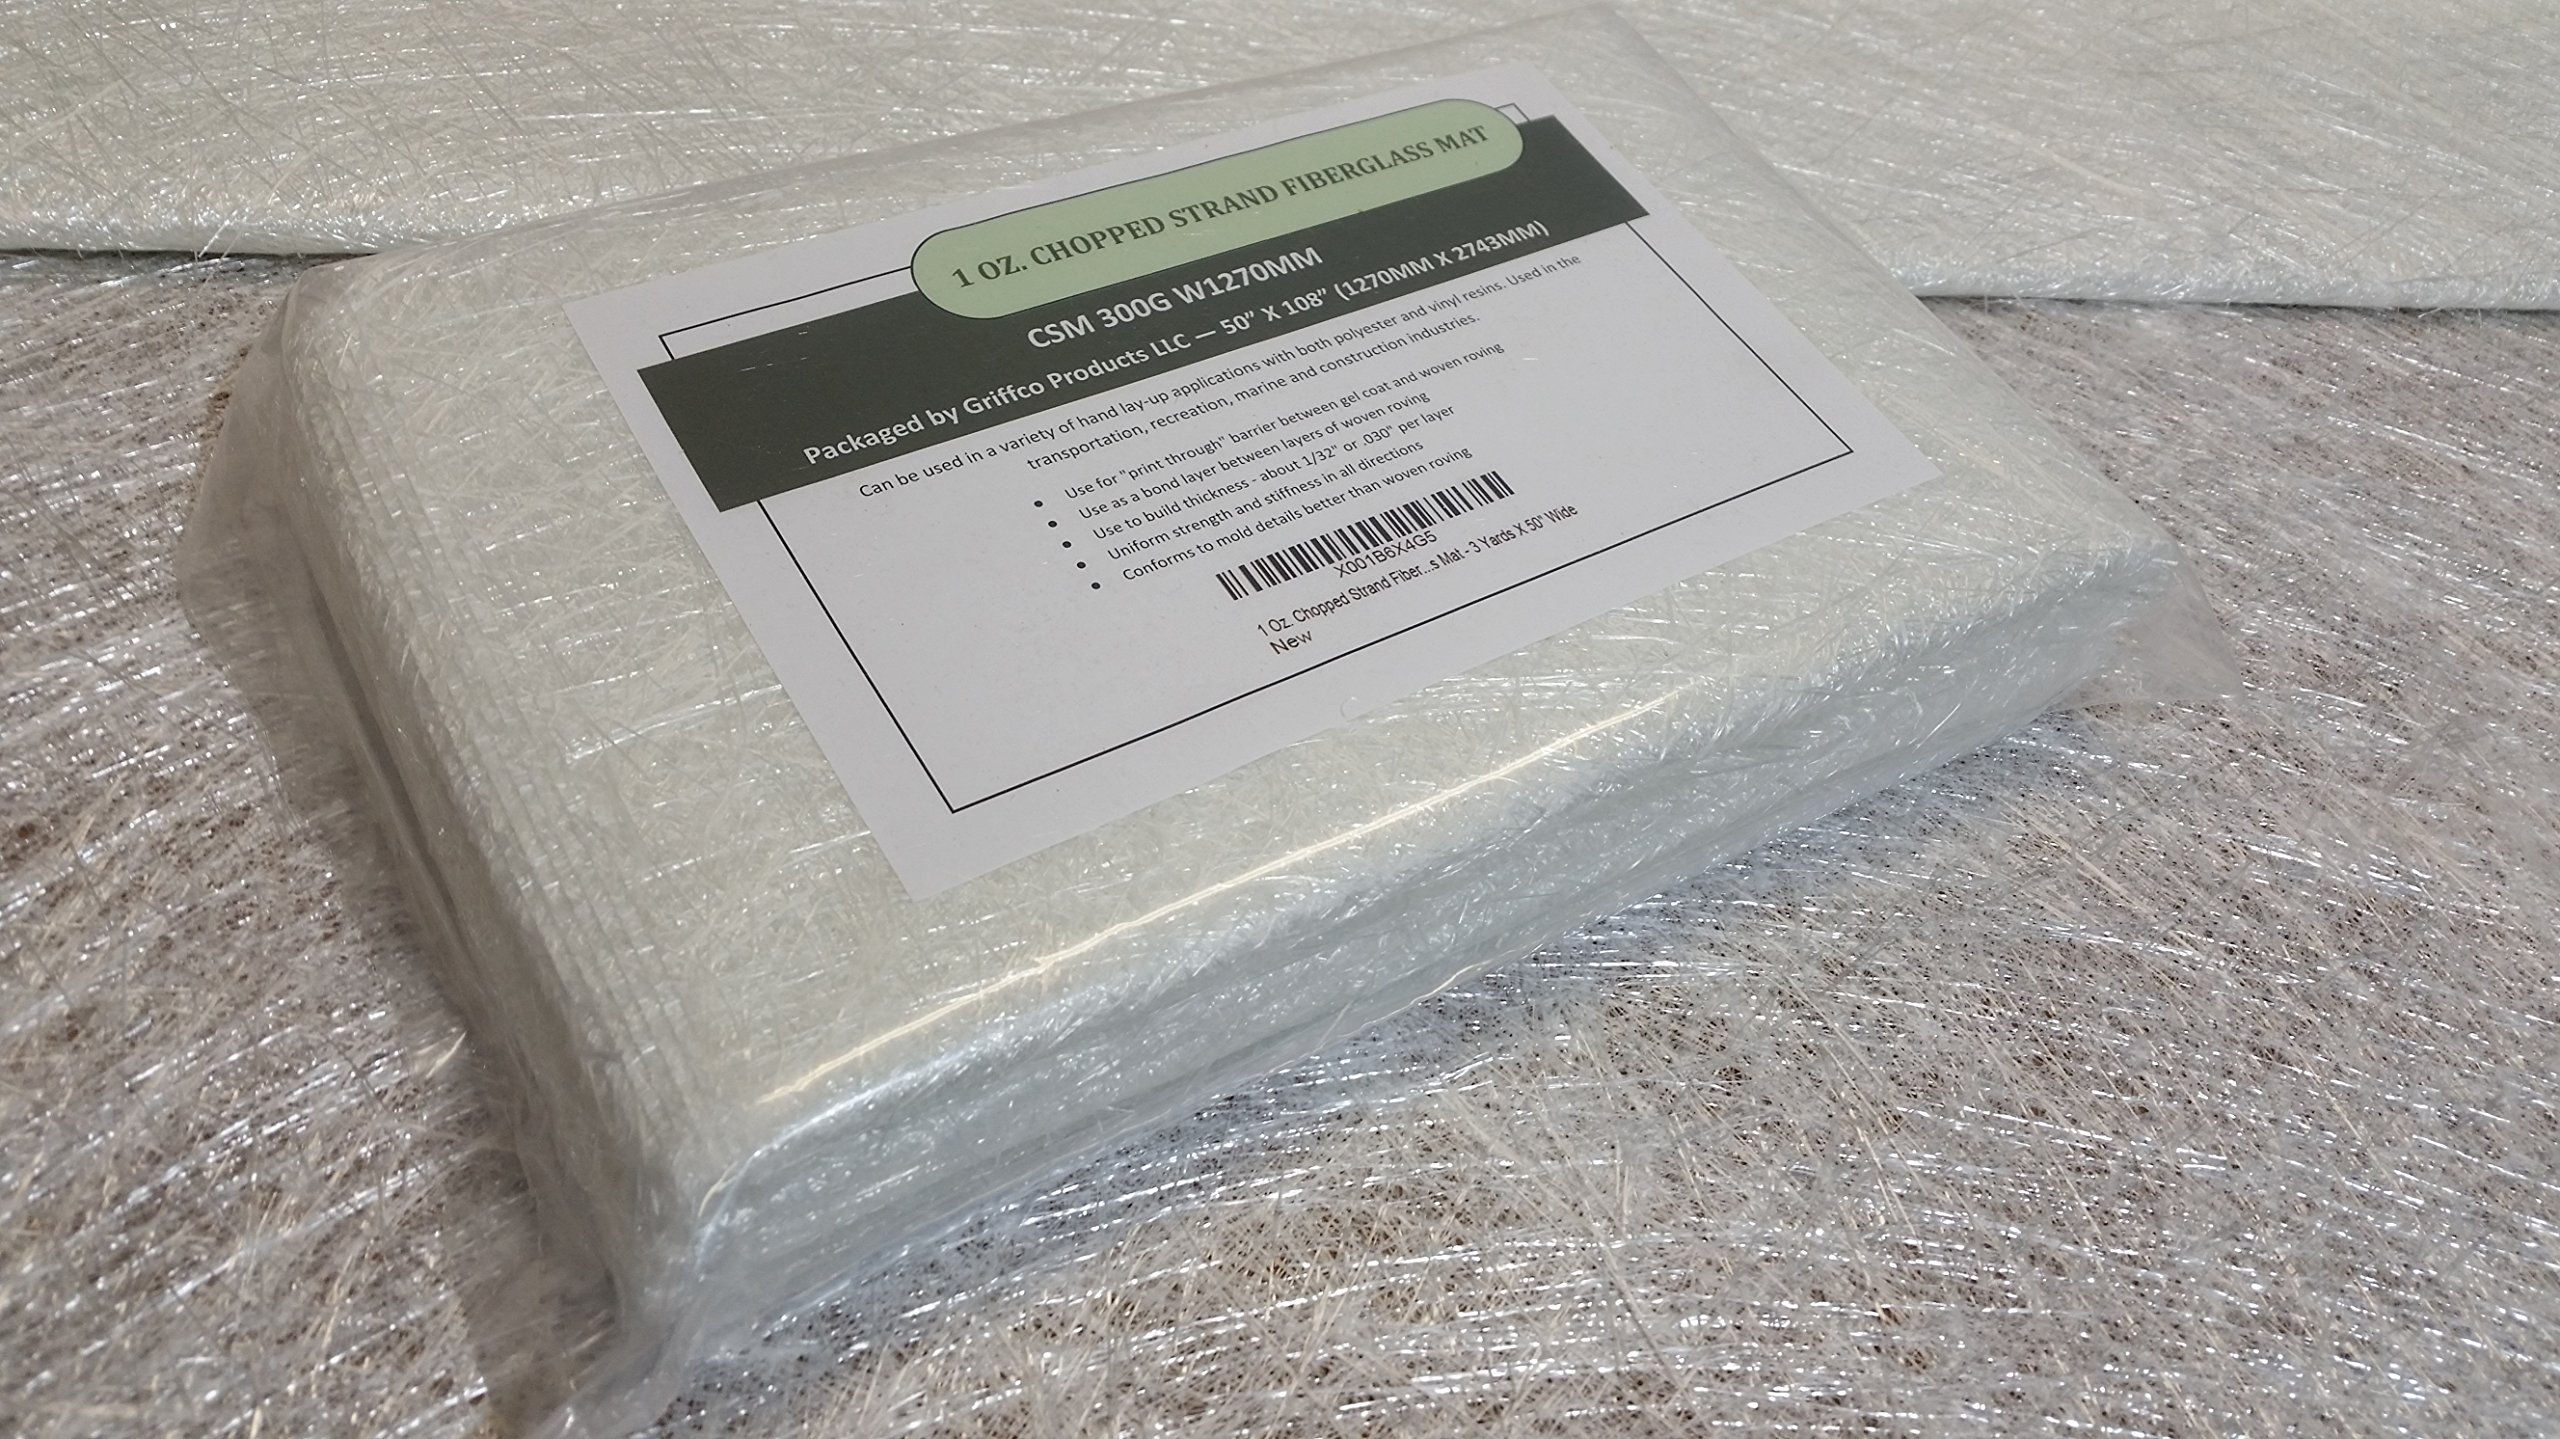 1 Oz. Chopped Strand Fiberglass Mat (lightweight) - 3 Yards X 50'' Wide for hand layup, vacuum bagging or molding with polyester or vinyl ester resins